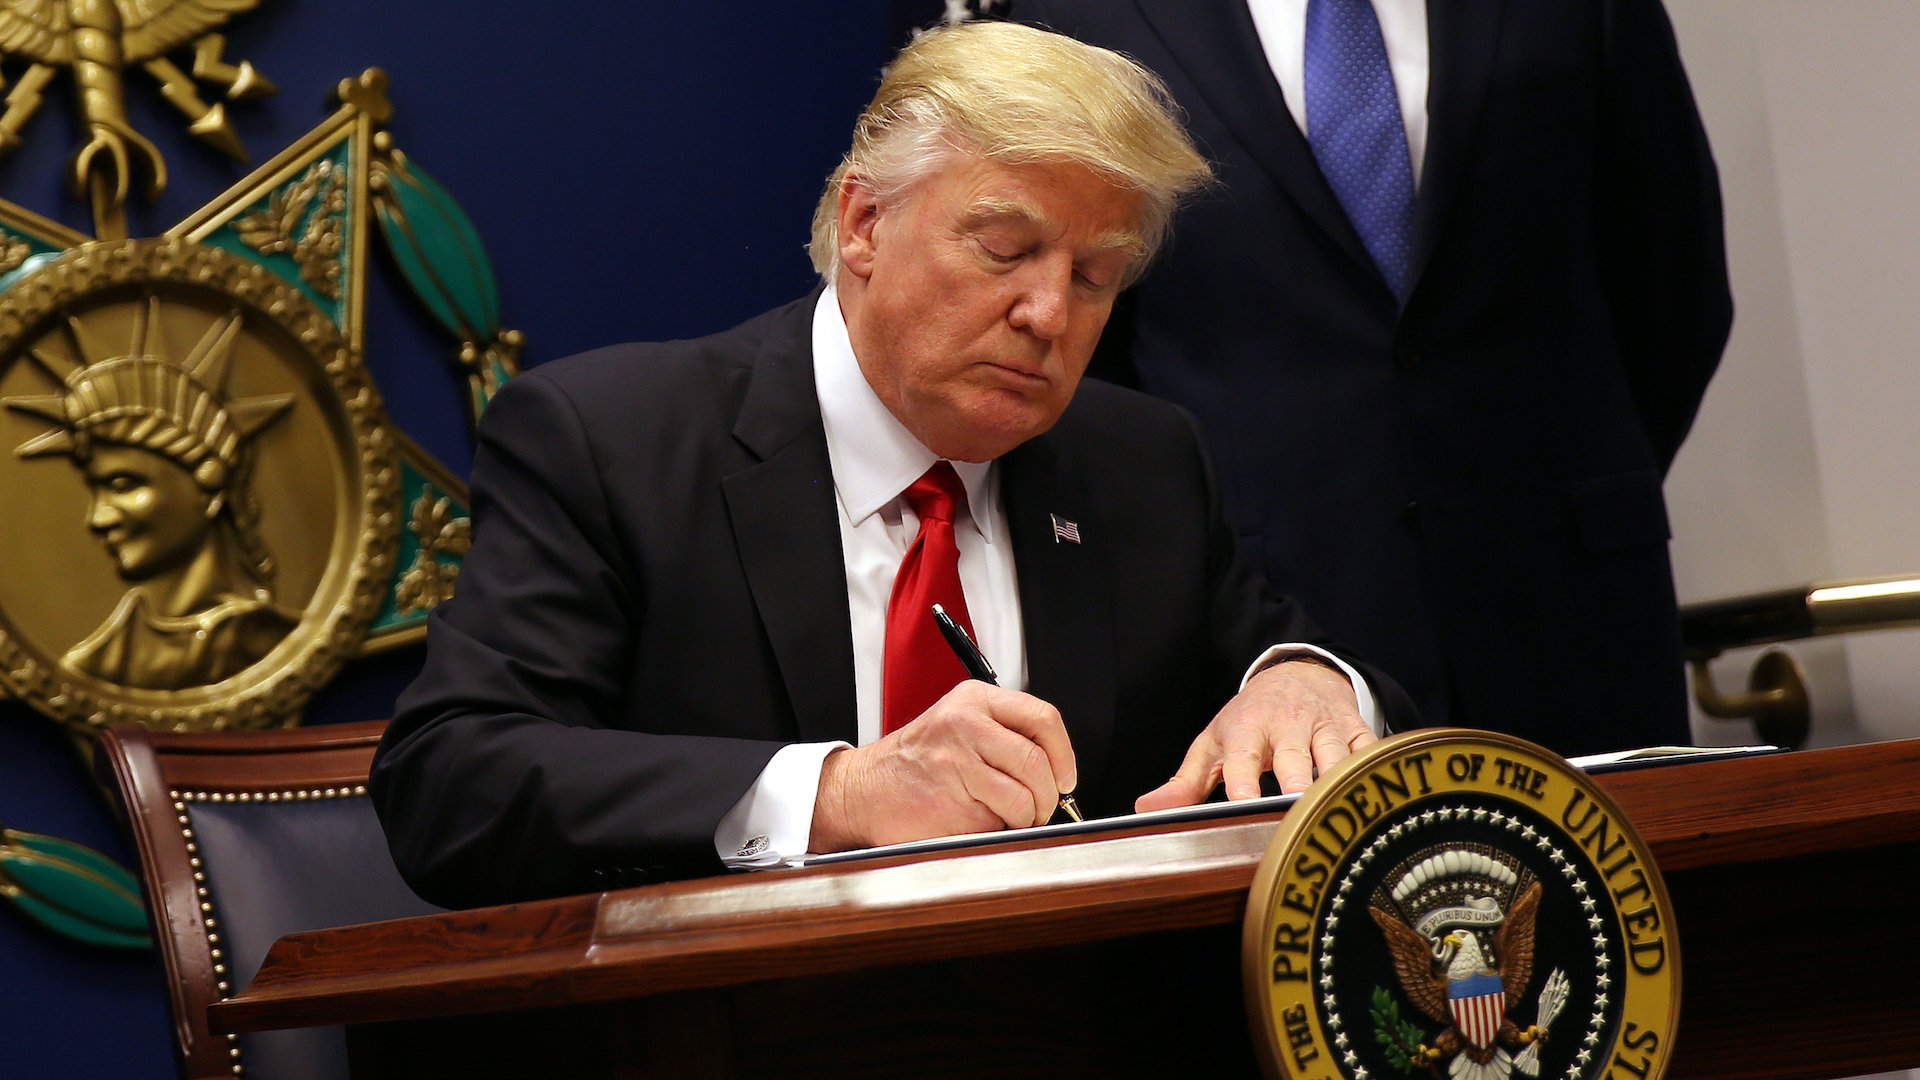 Federal appeals court weighs Trump immigration order